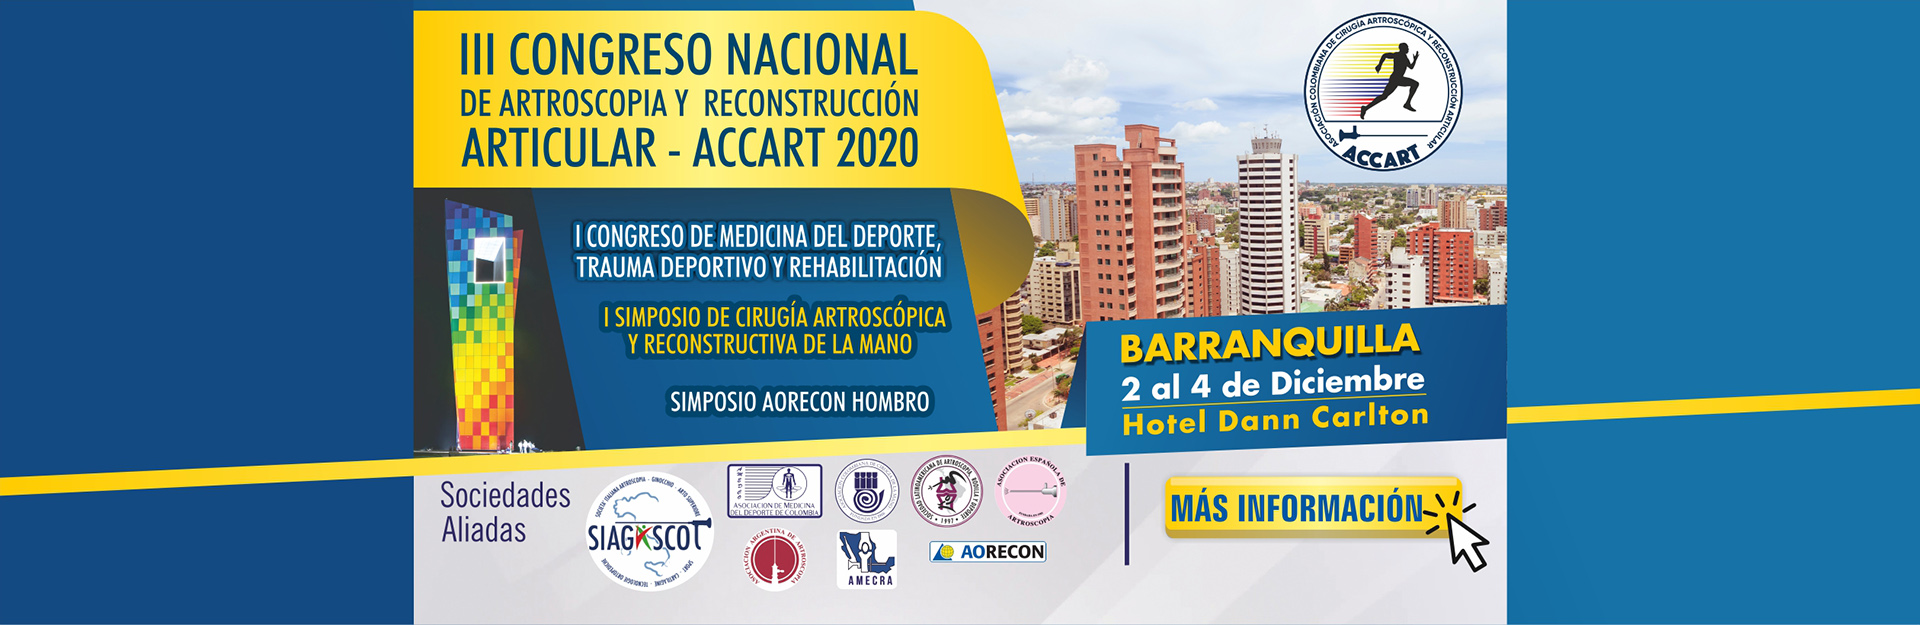 back_congres_bquilla